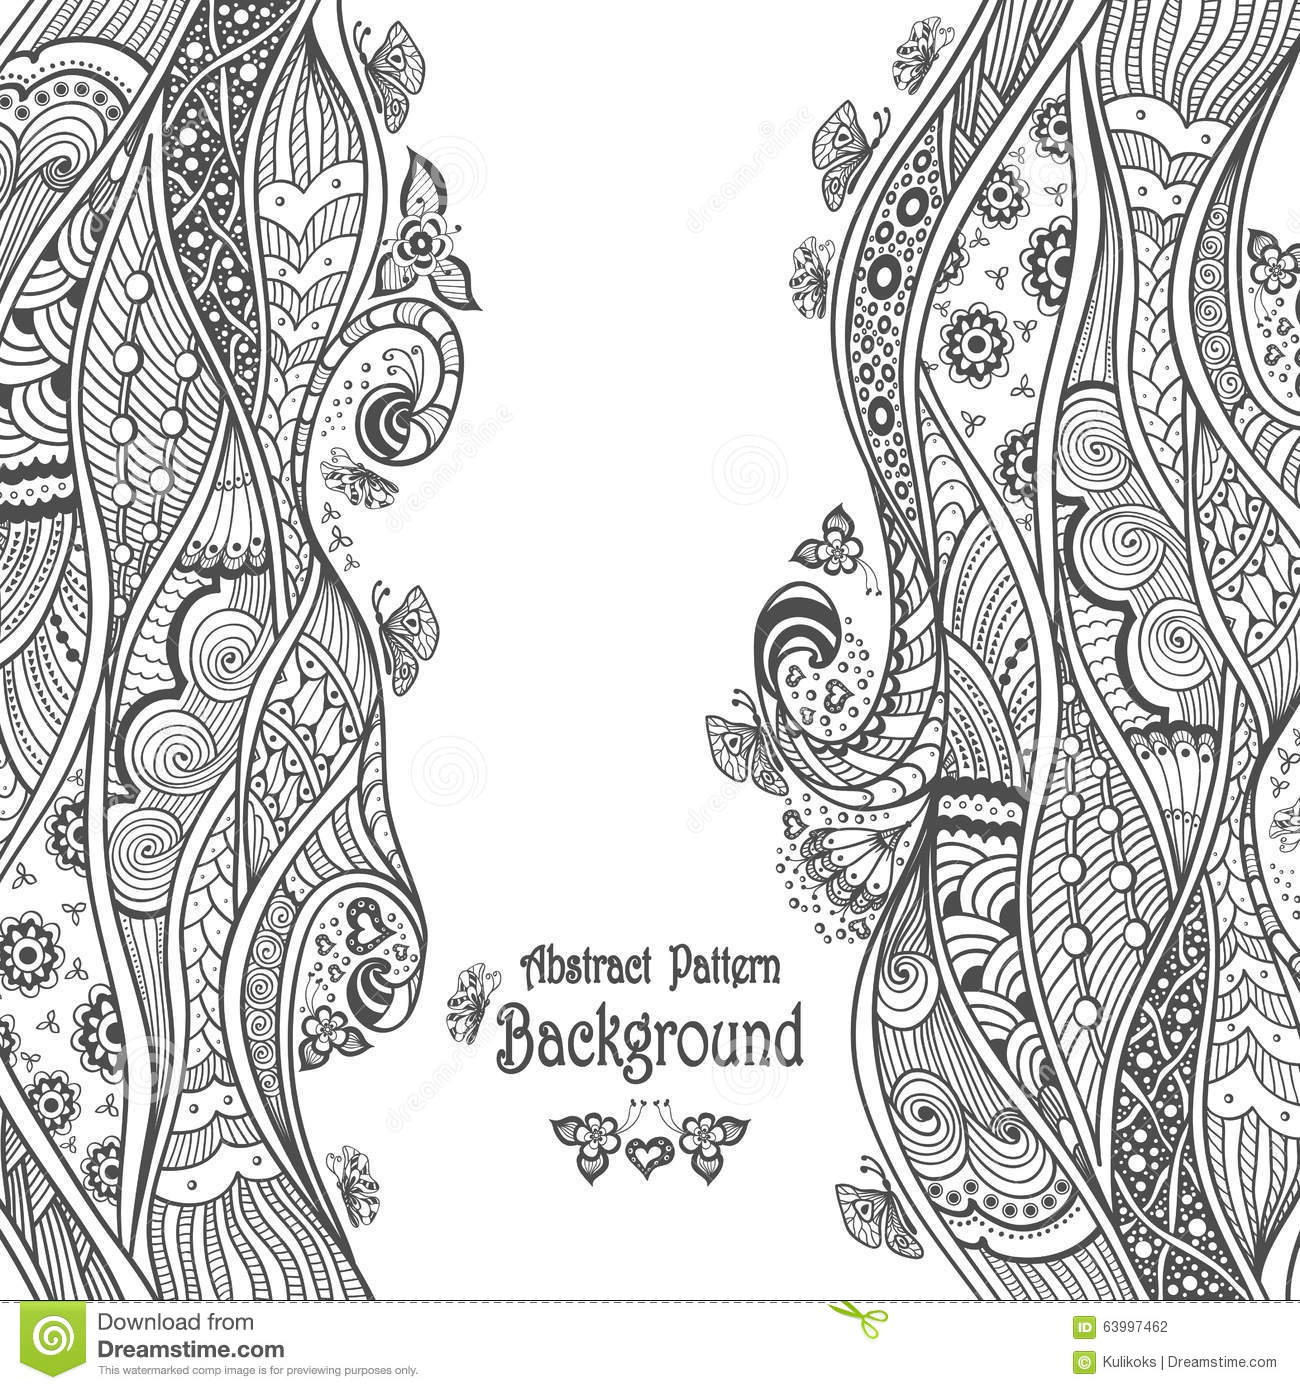 abstract pattern background in zen doodle style black on white